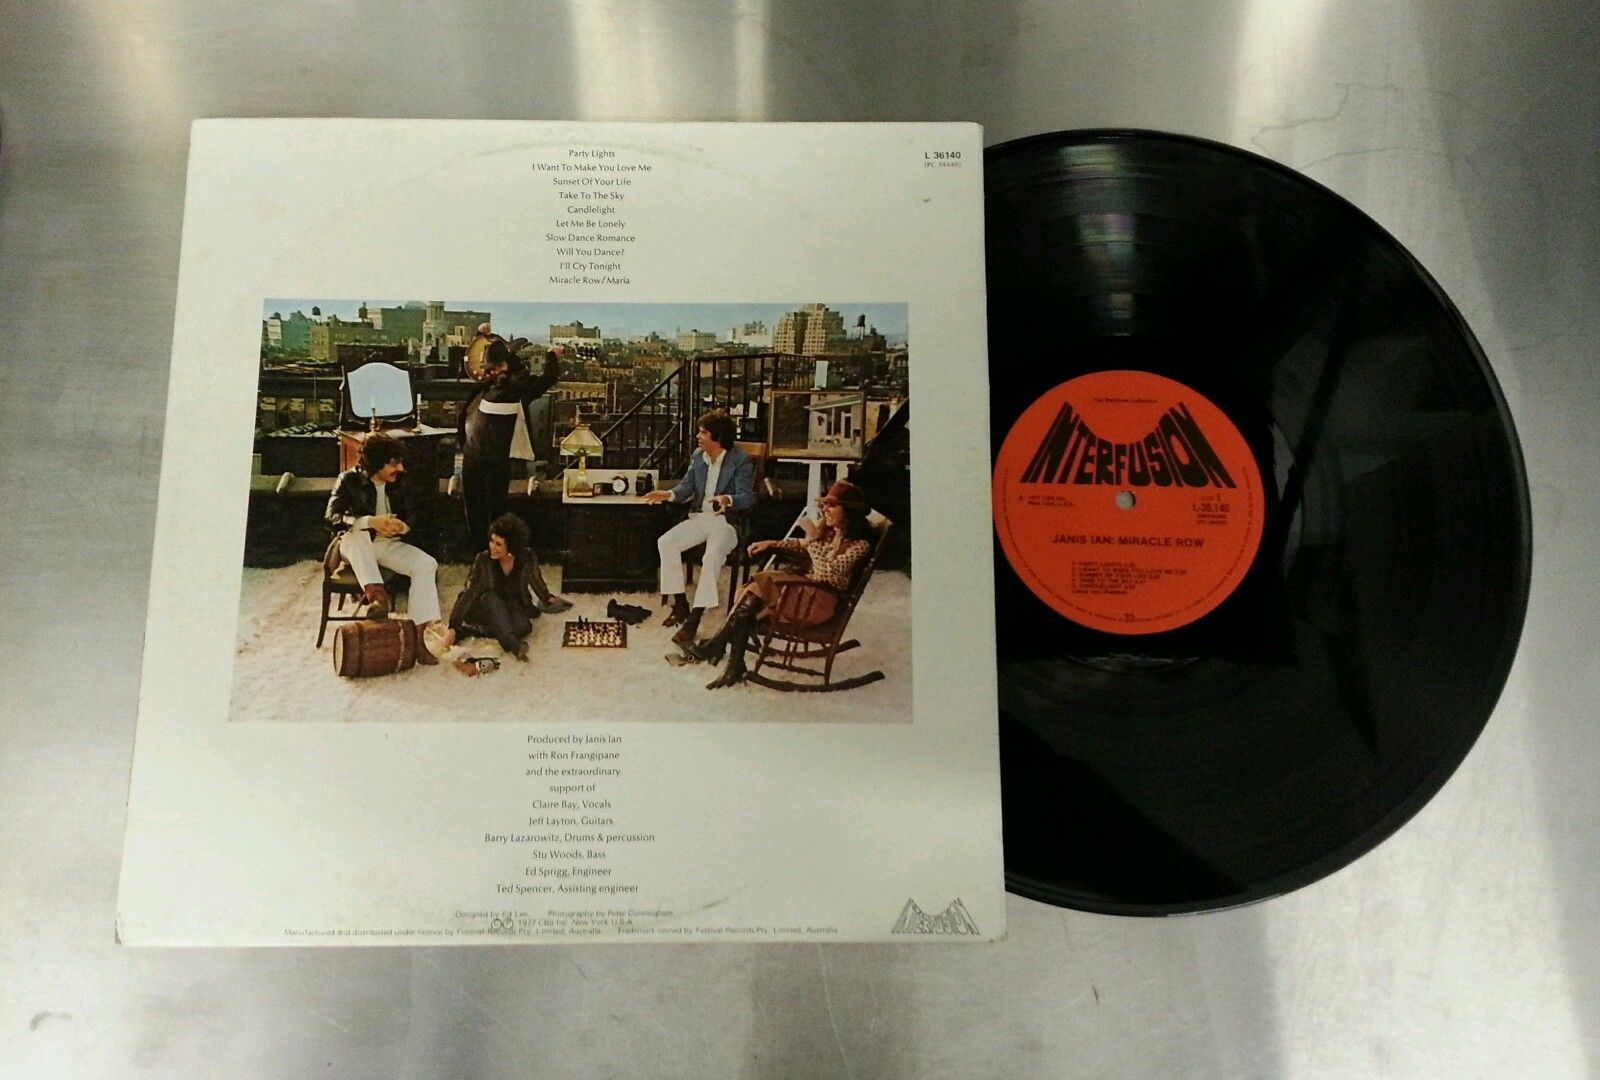 JANIS-IAN-Miracle-Row-Vinyl-LP-Record-USA-Press-GFold-WInner-PC-34440-271898567917-2